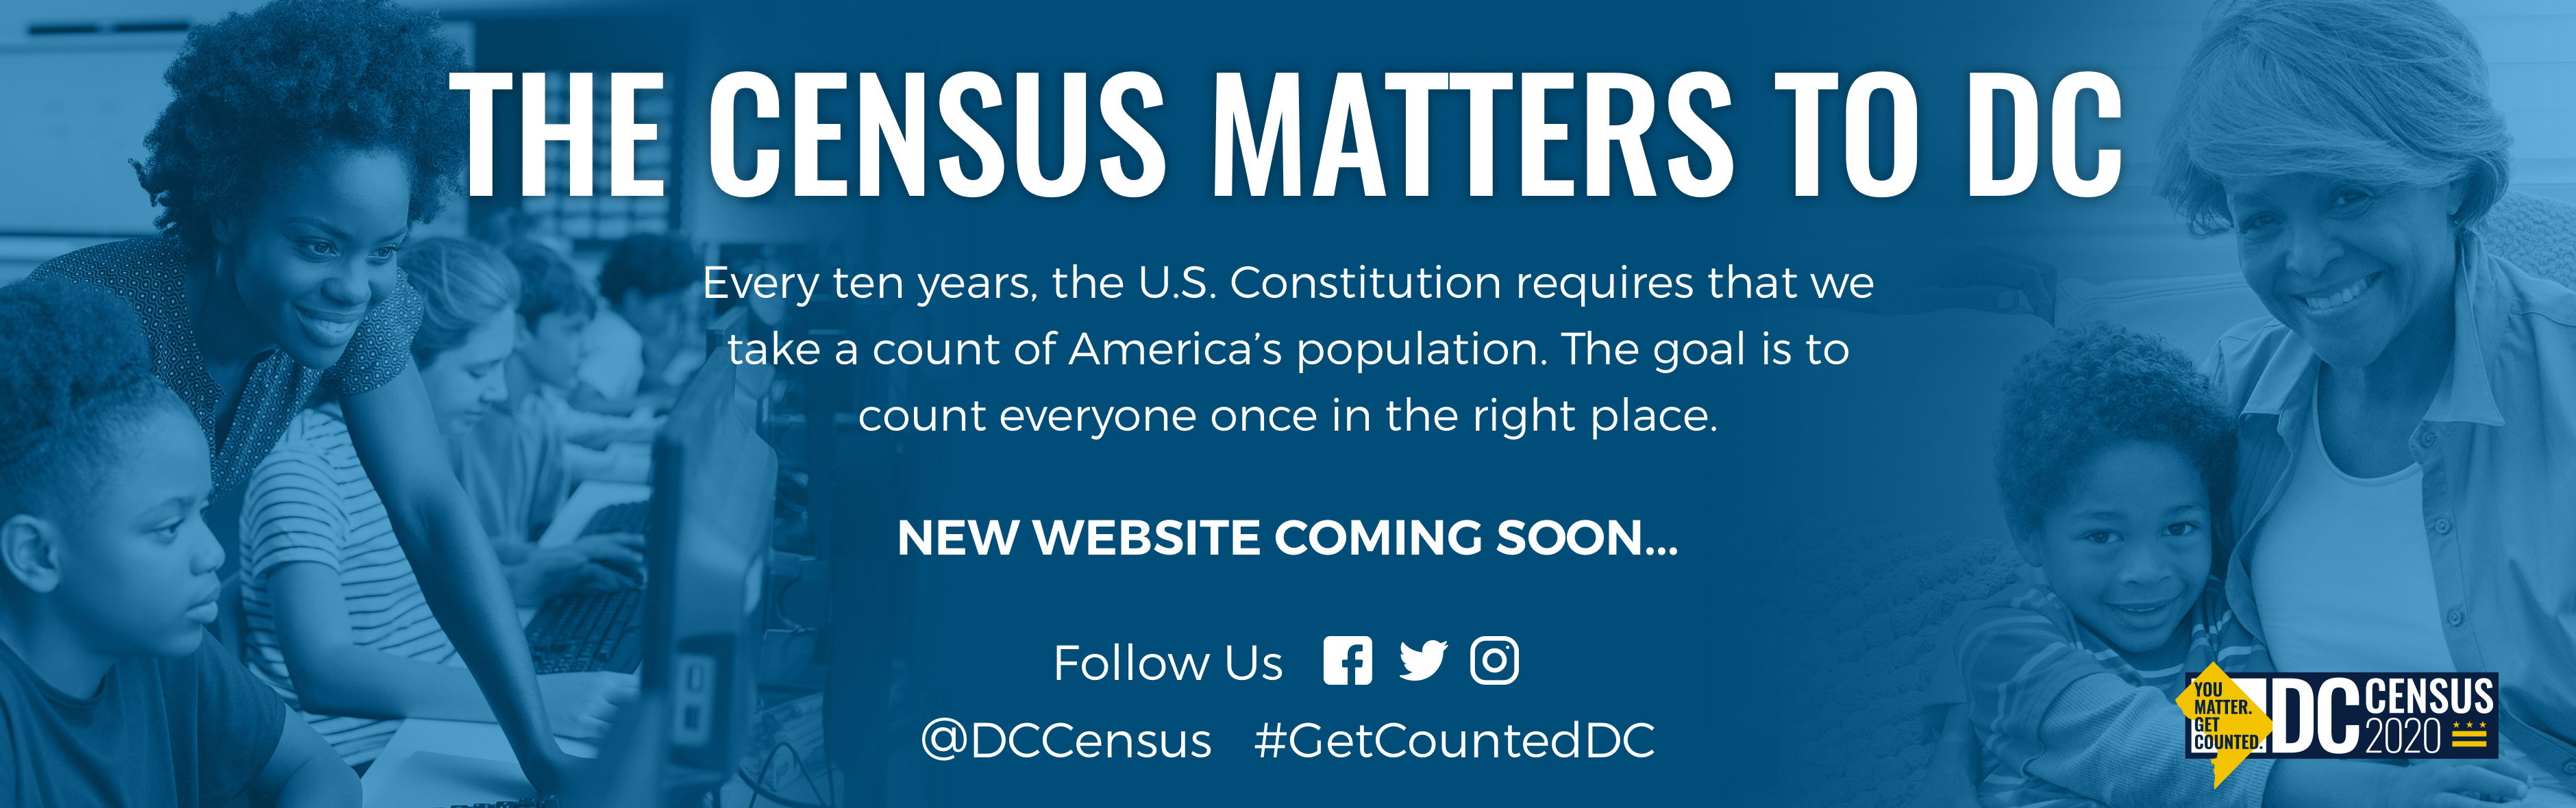 Every 10 years the US Constitution requires that we take a count of America's population. The goal is to count everyone once in the right place. New website coming soon. Follow us at @DCCensus